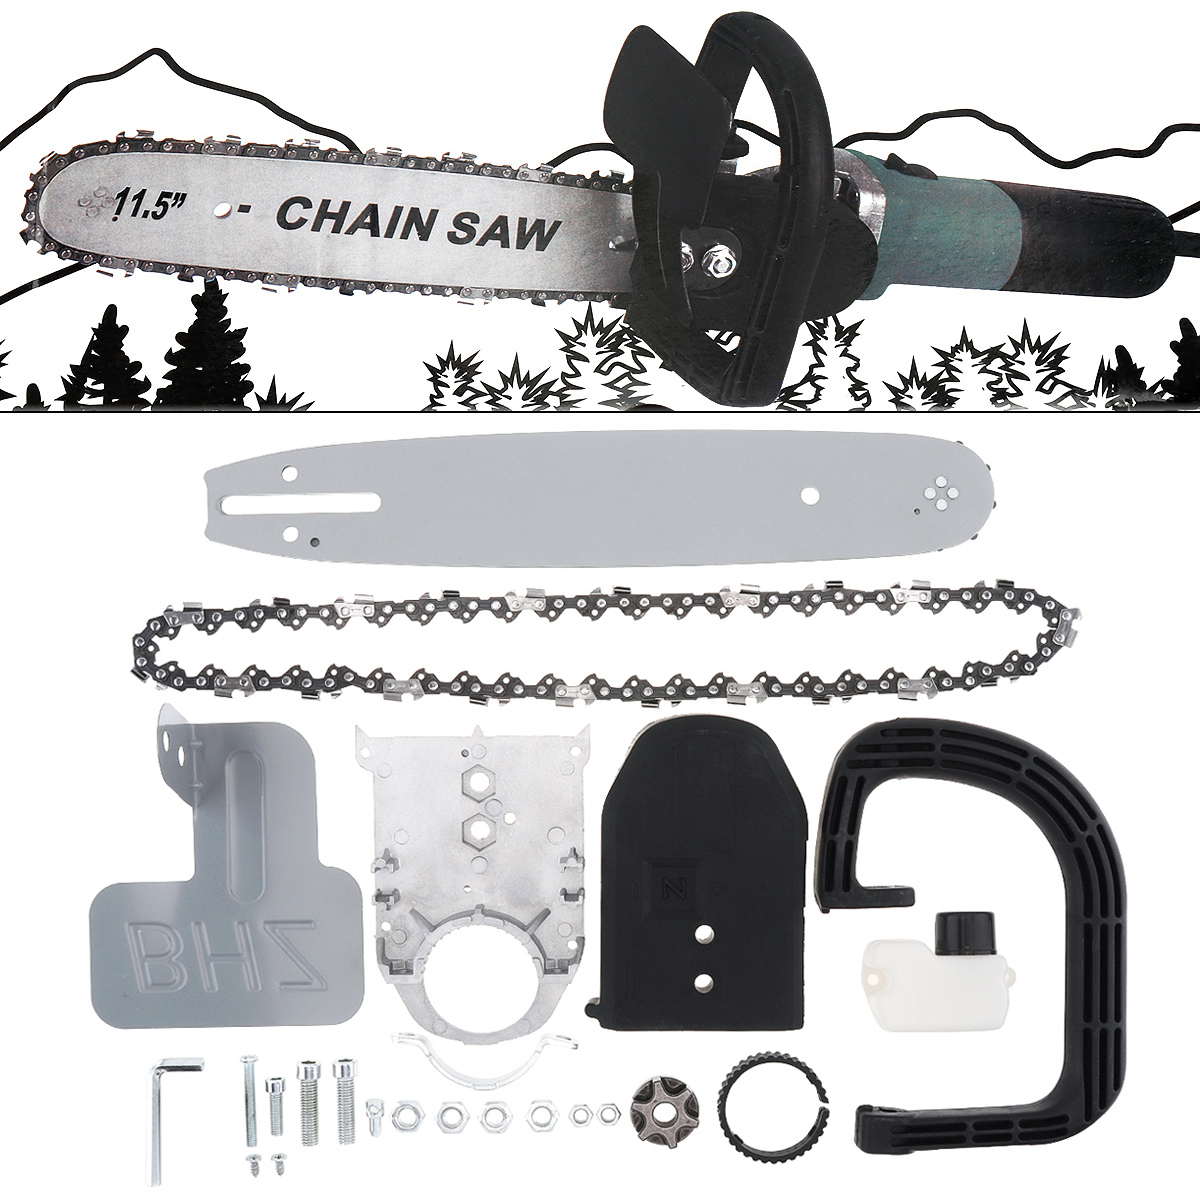 11.5 Inch M10 Upgrade Small Angle Grinder Electric Chain Saw Parts Converter Set Chainsaw Bracket Wood Cutting Tools